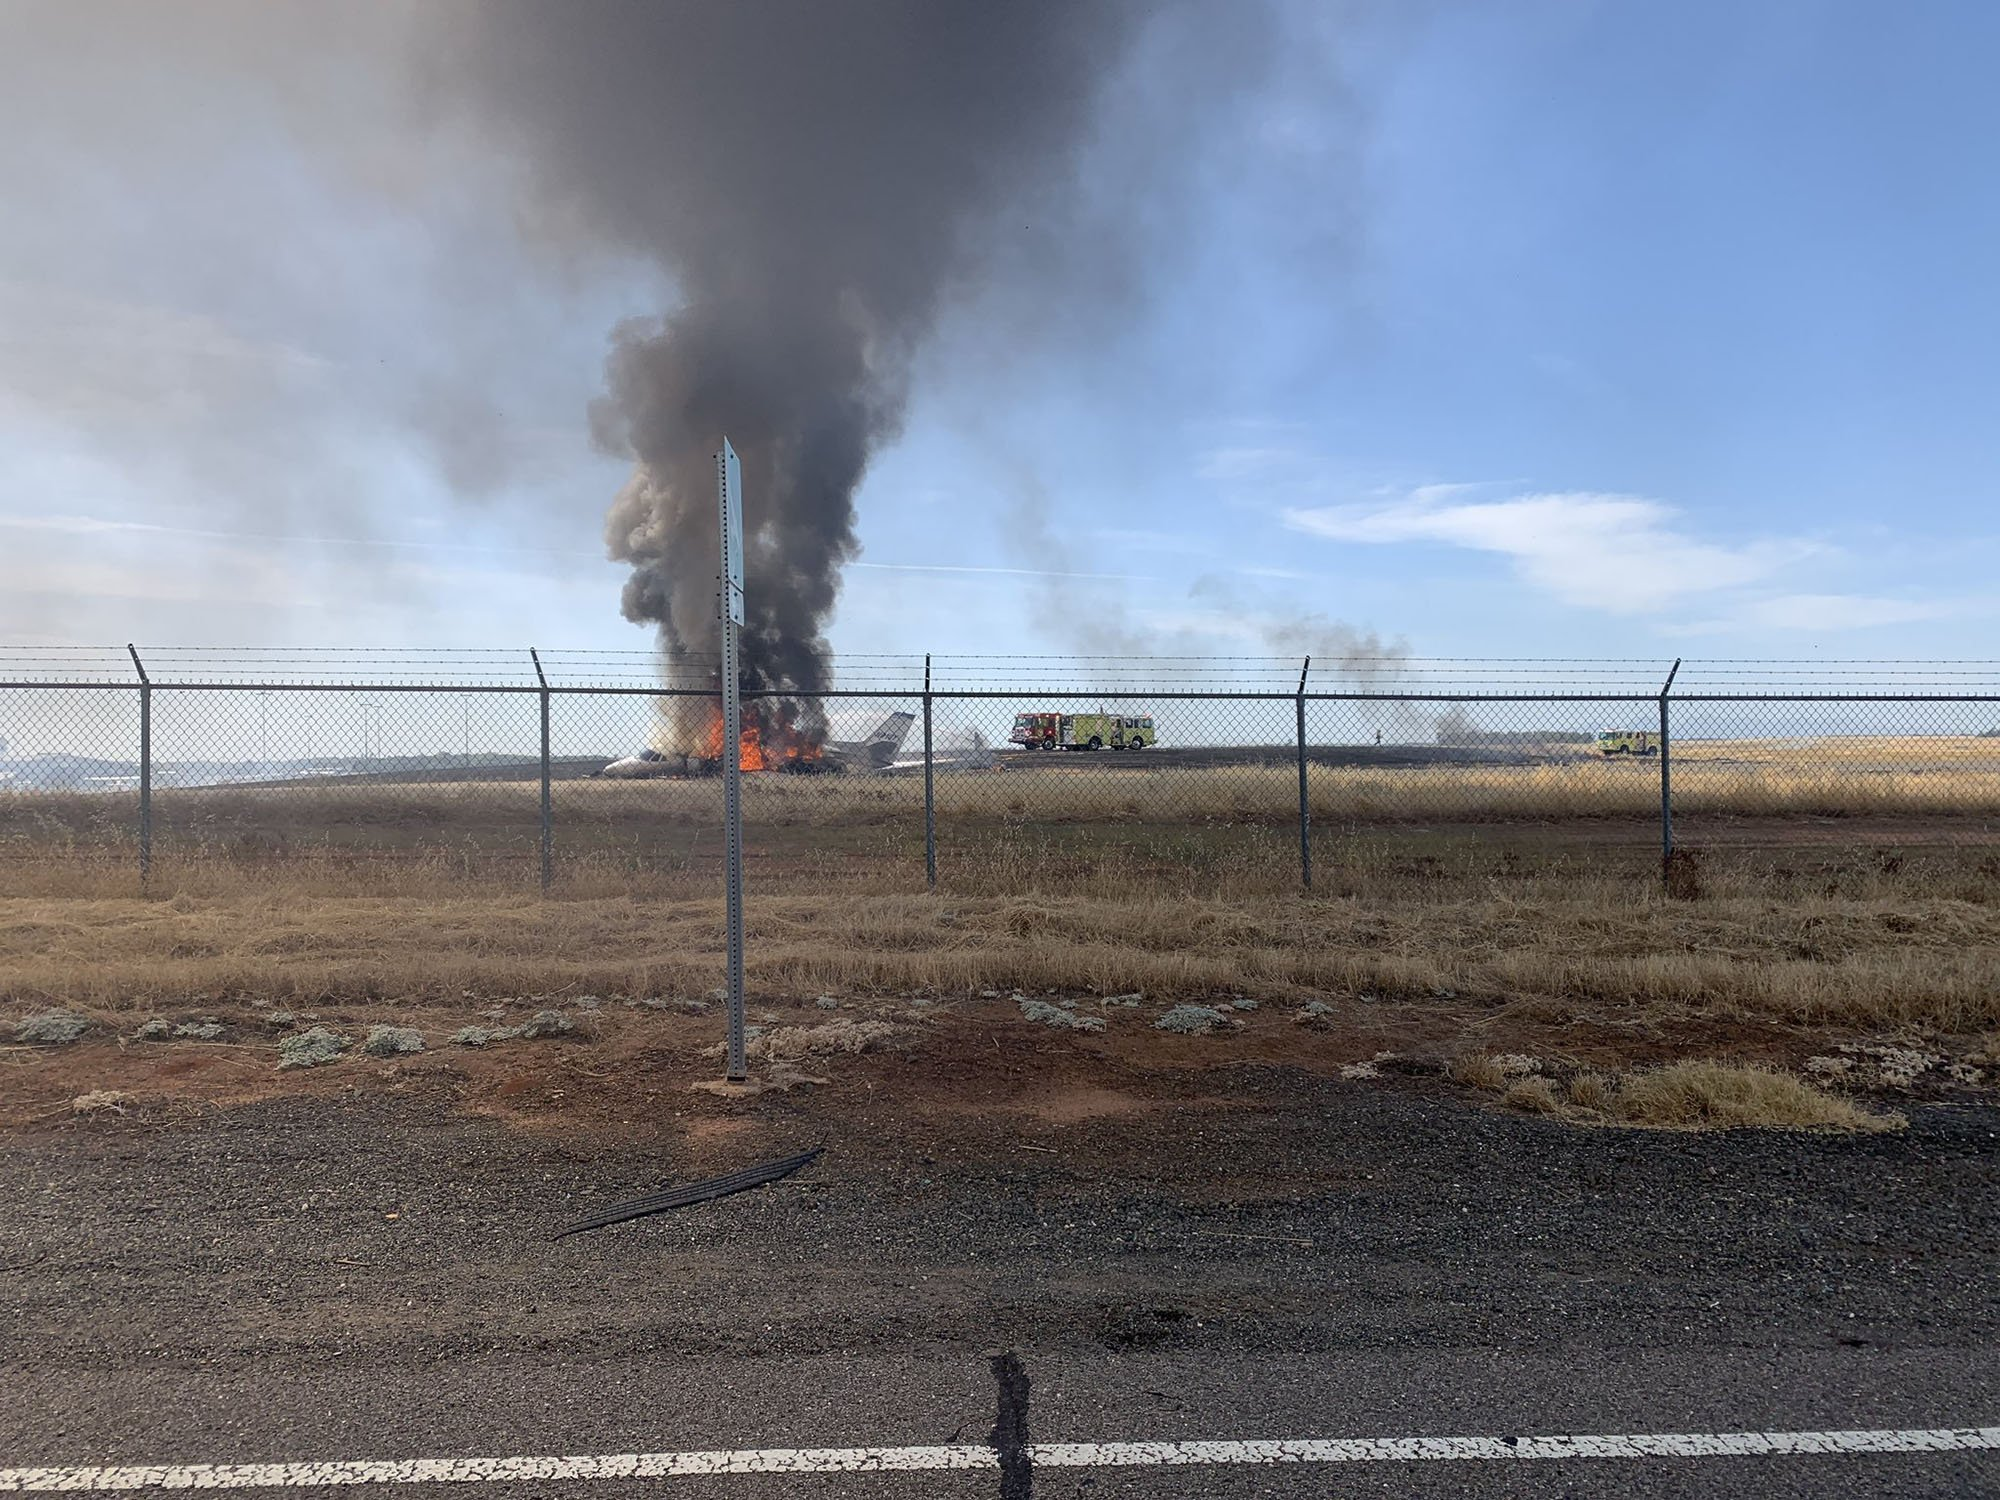 10 people walk away uninjured from a small plane crash in Oroville, California